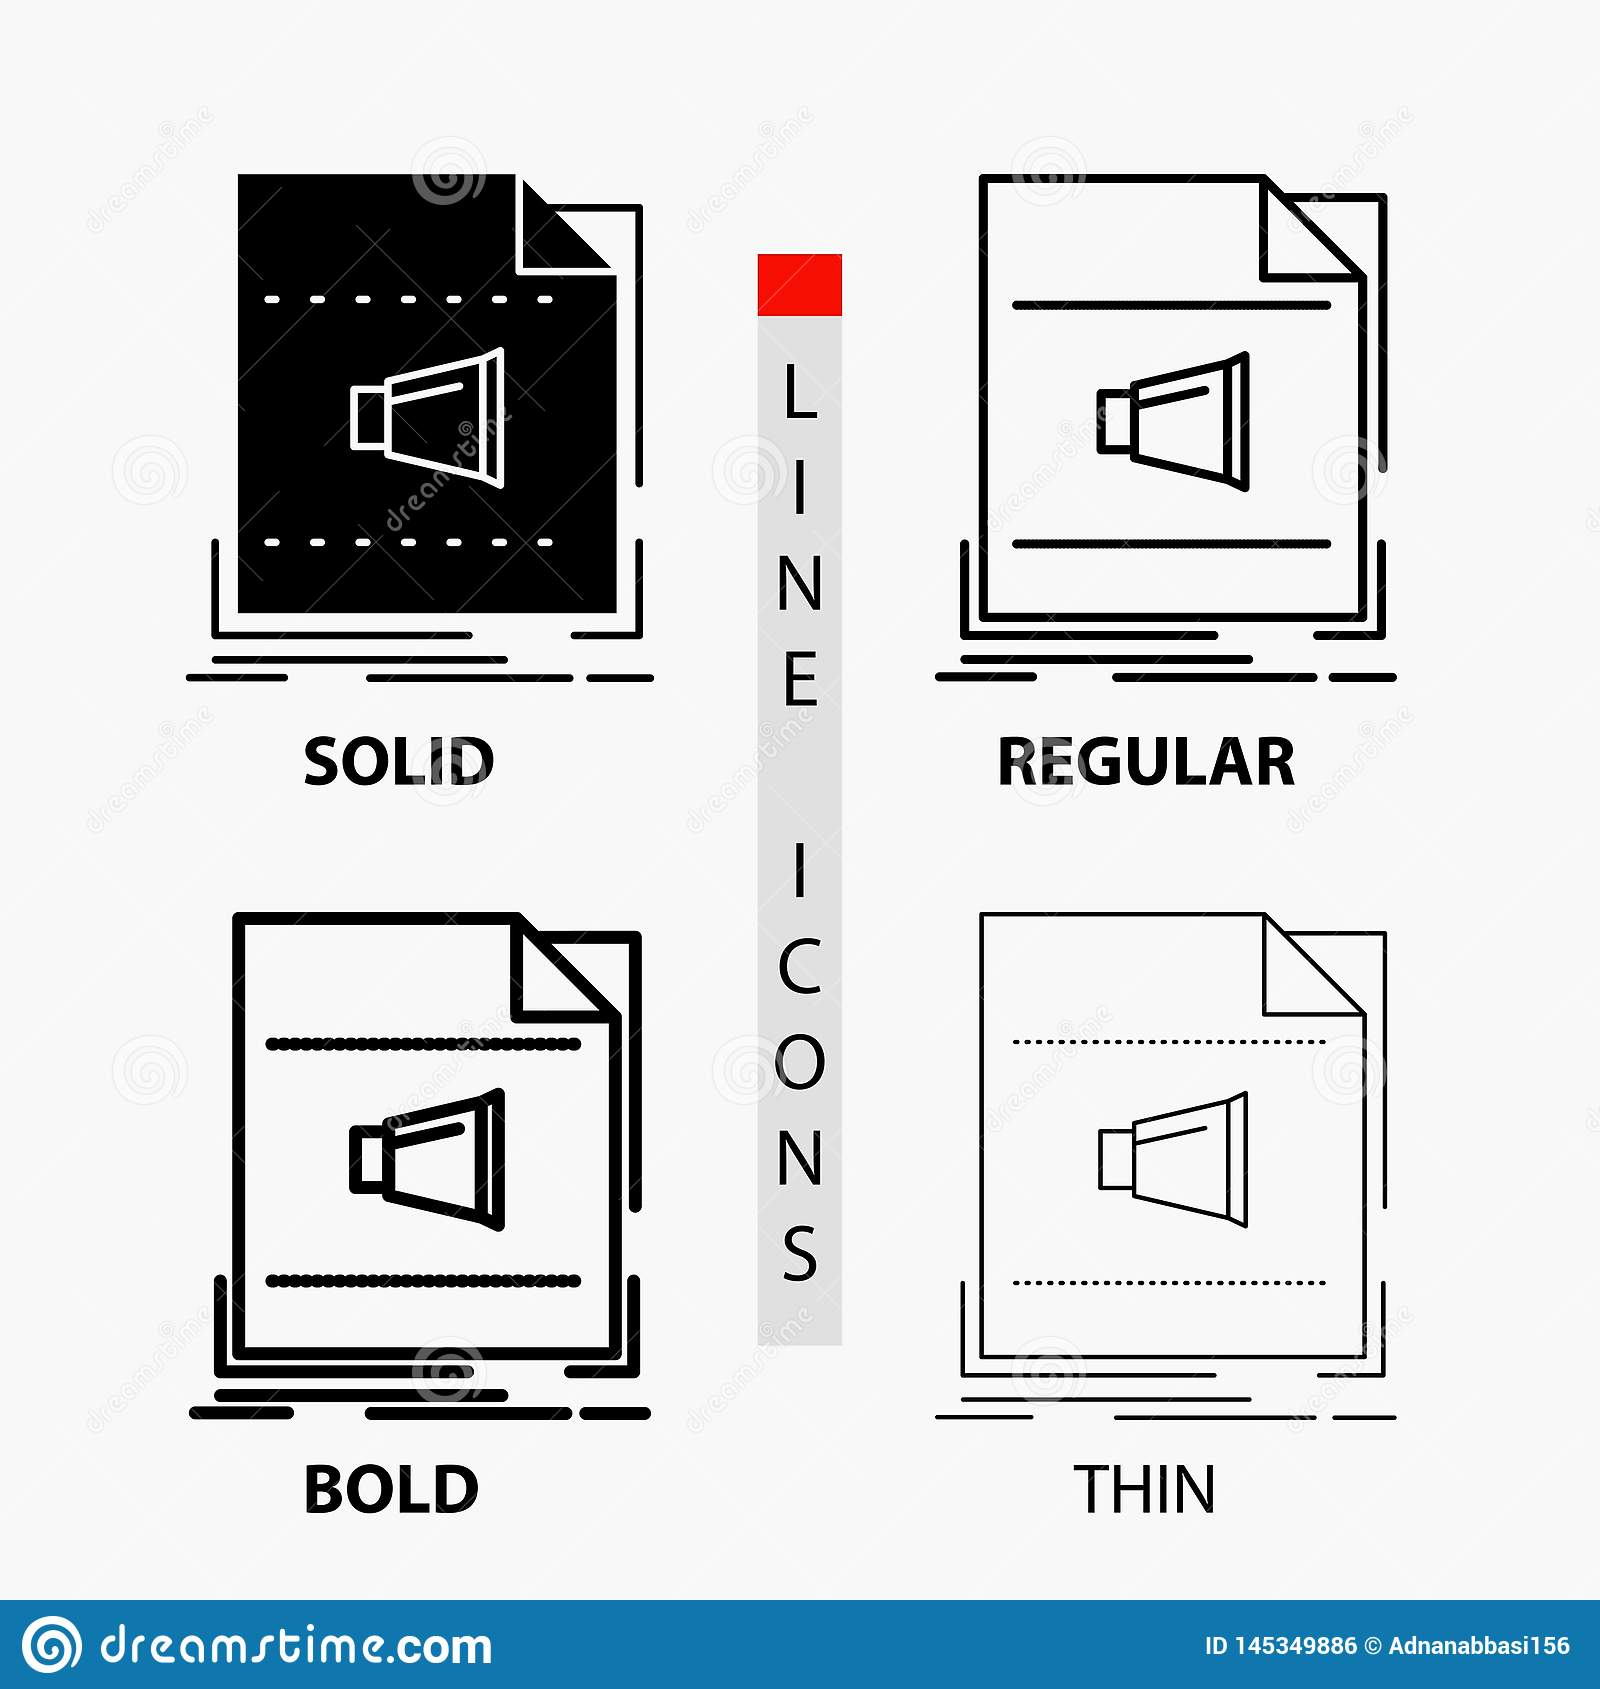 Audio, file, format, music, sound Icon in Thin, Regular, Bold Line and Glyph Style. Vector illustration